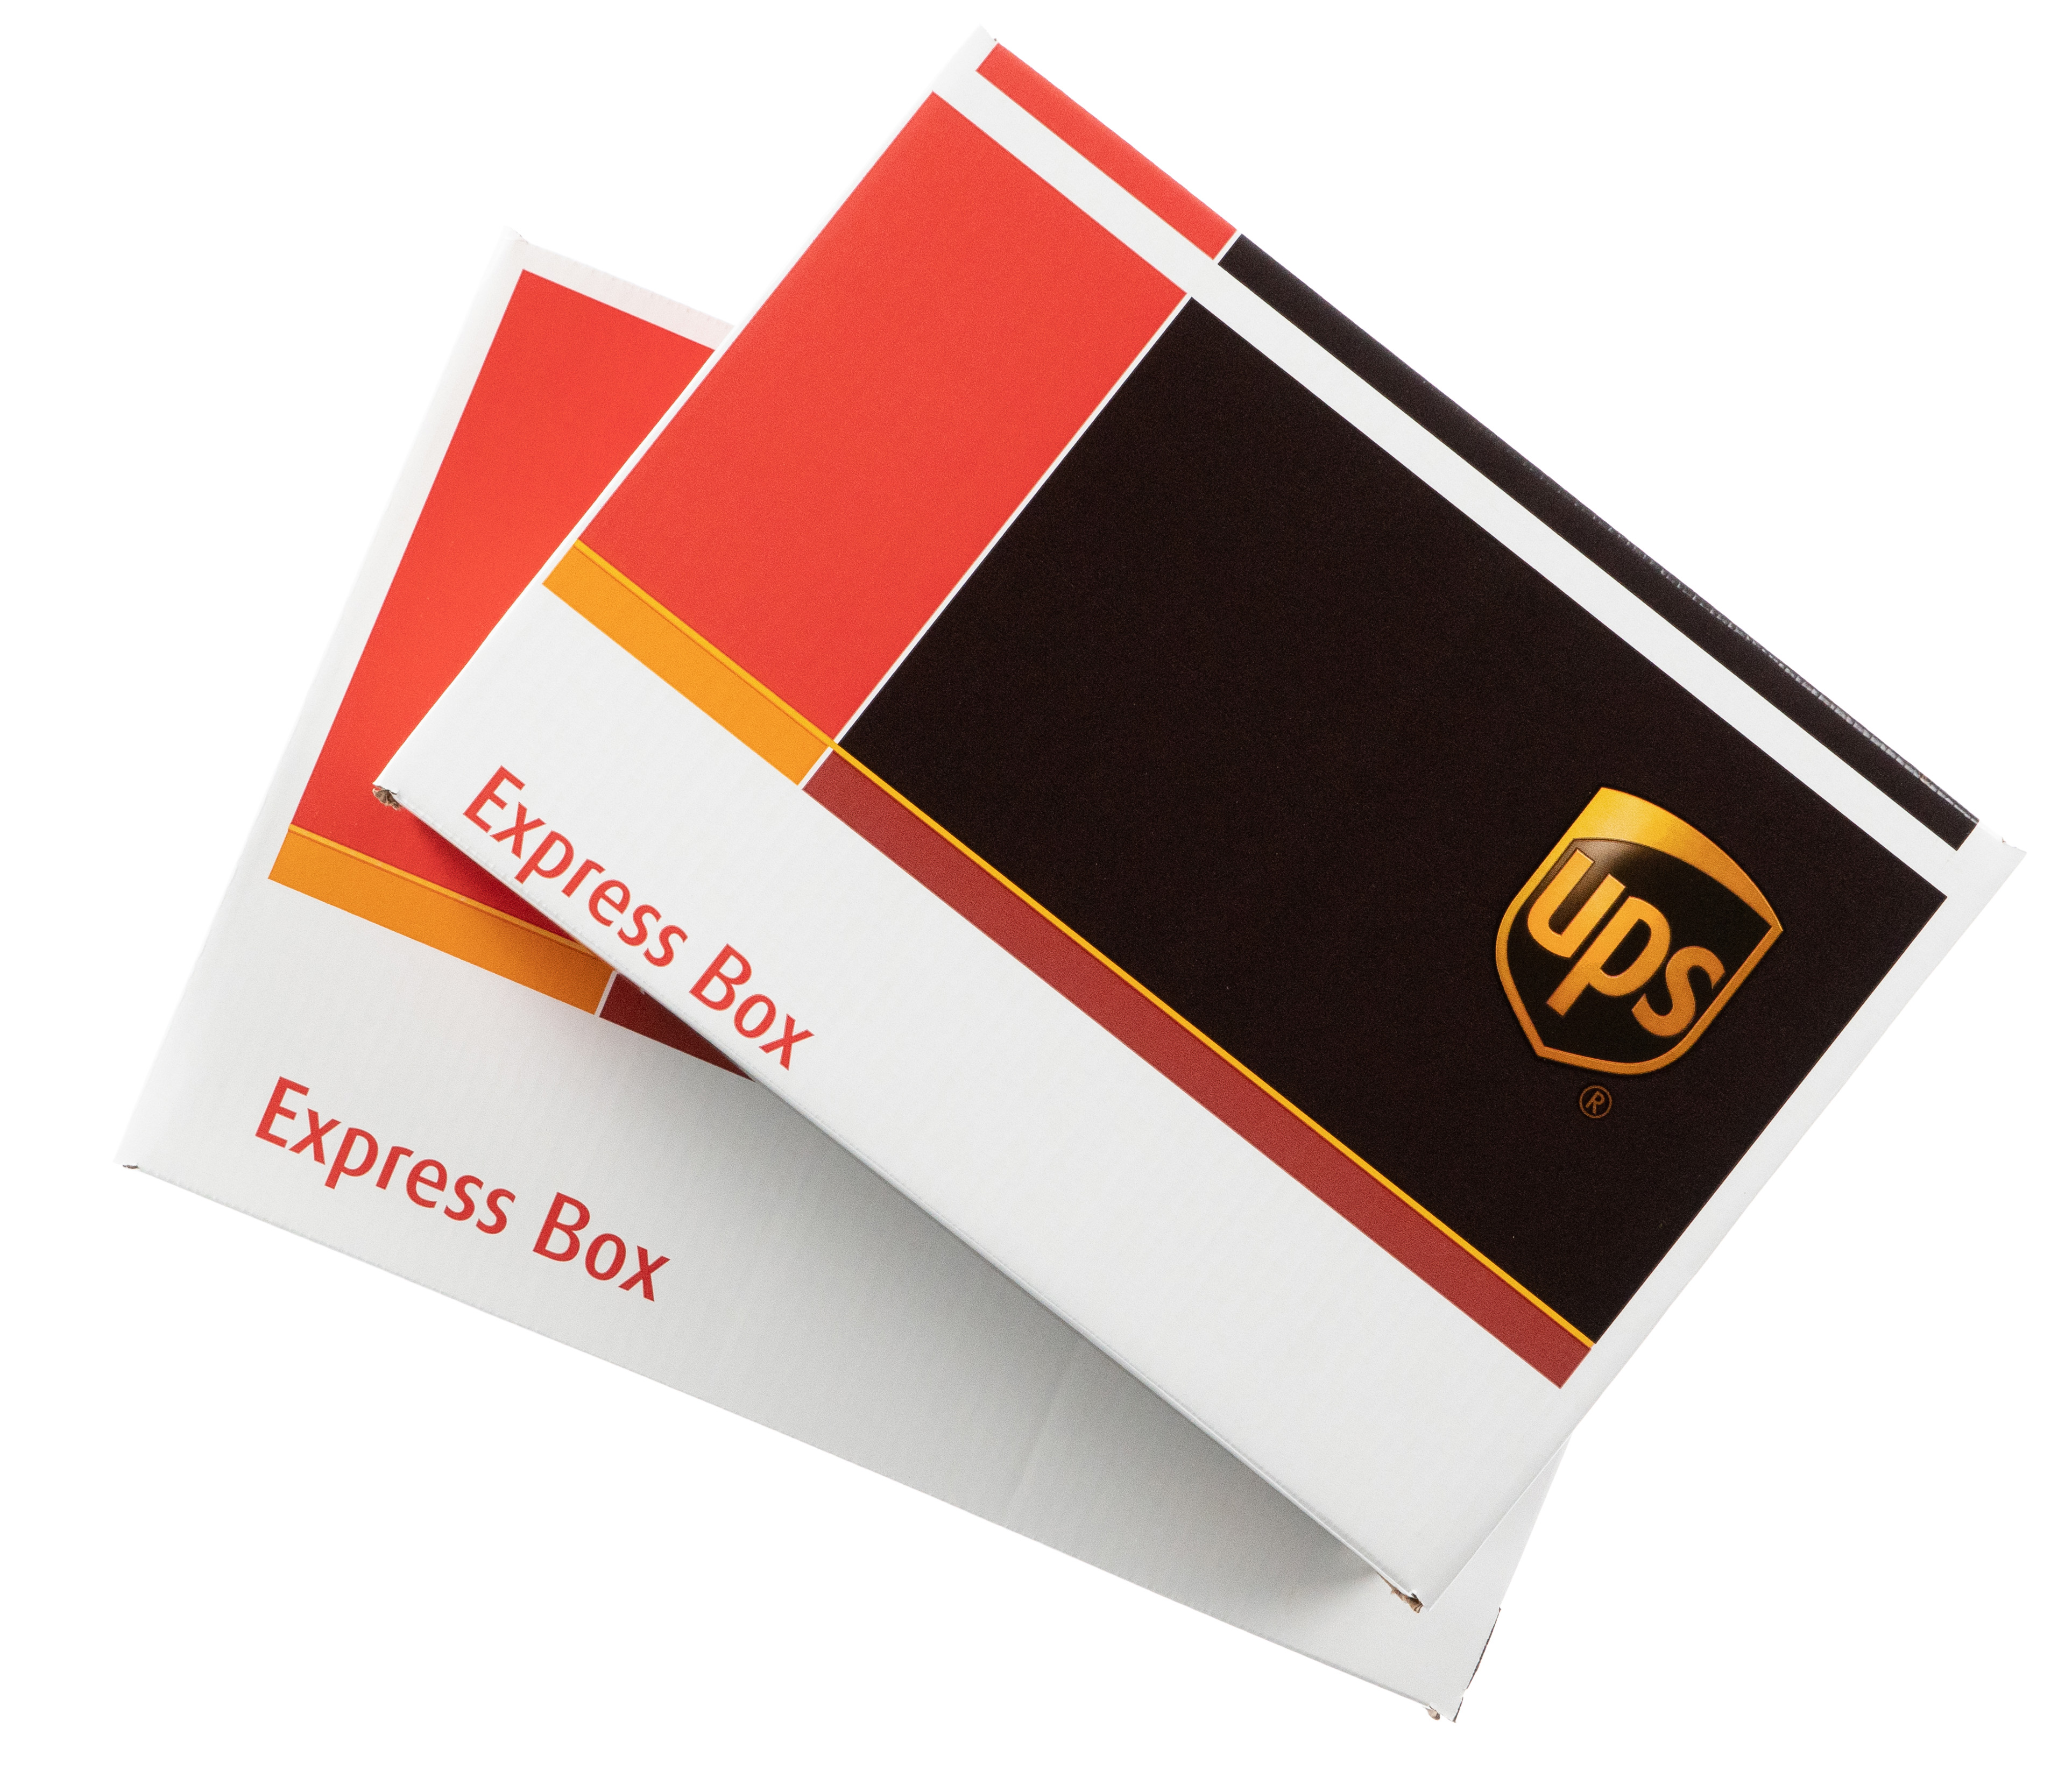 UPS boxes for Express shipping rates